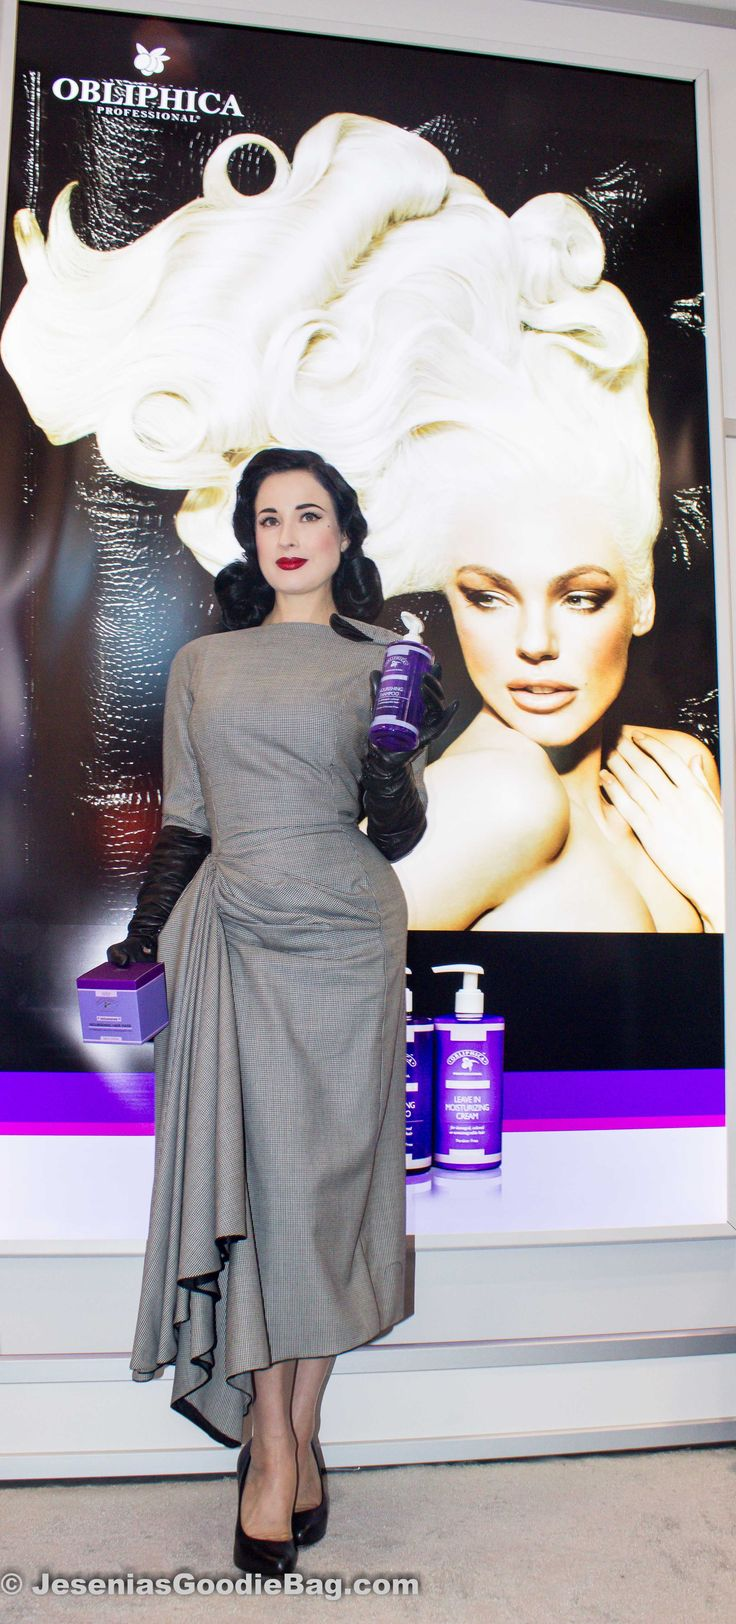 1 Location, 3 Days and 300 Beauty & Hair Care vendors. Jesenia's Goodie Bag begins with Day 1. (International Beauty Show: Day 1) http://jeseniasgoodiebag.com/2013/04/23/international-beauty-show-day-1/    (With: Dita Von Teese for Obliphica Professional) @DitaVonTeese